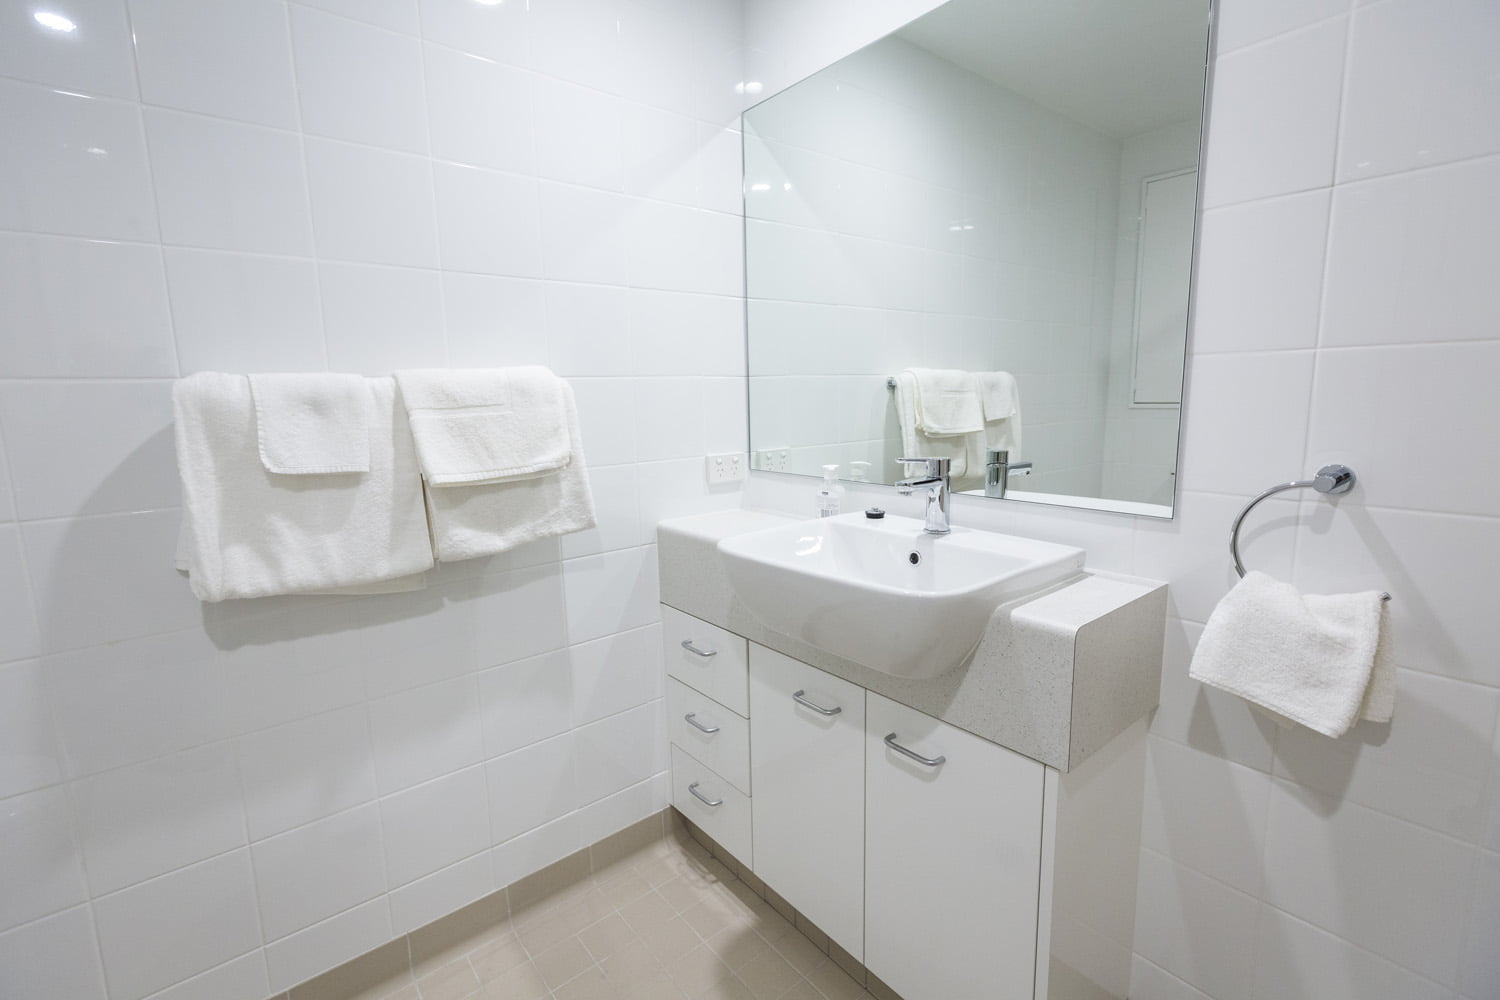 The studio room features a private bathroom